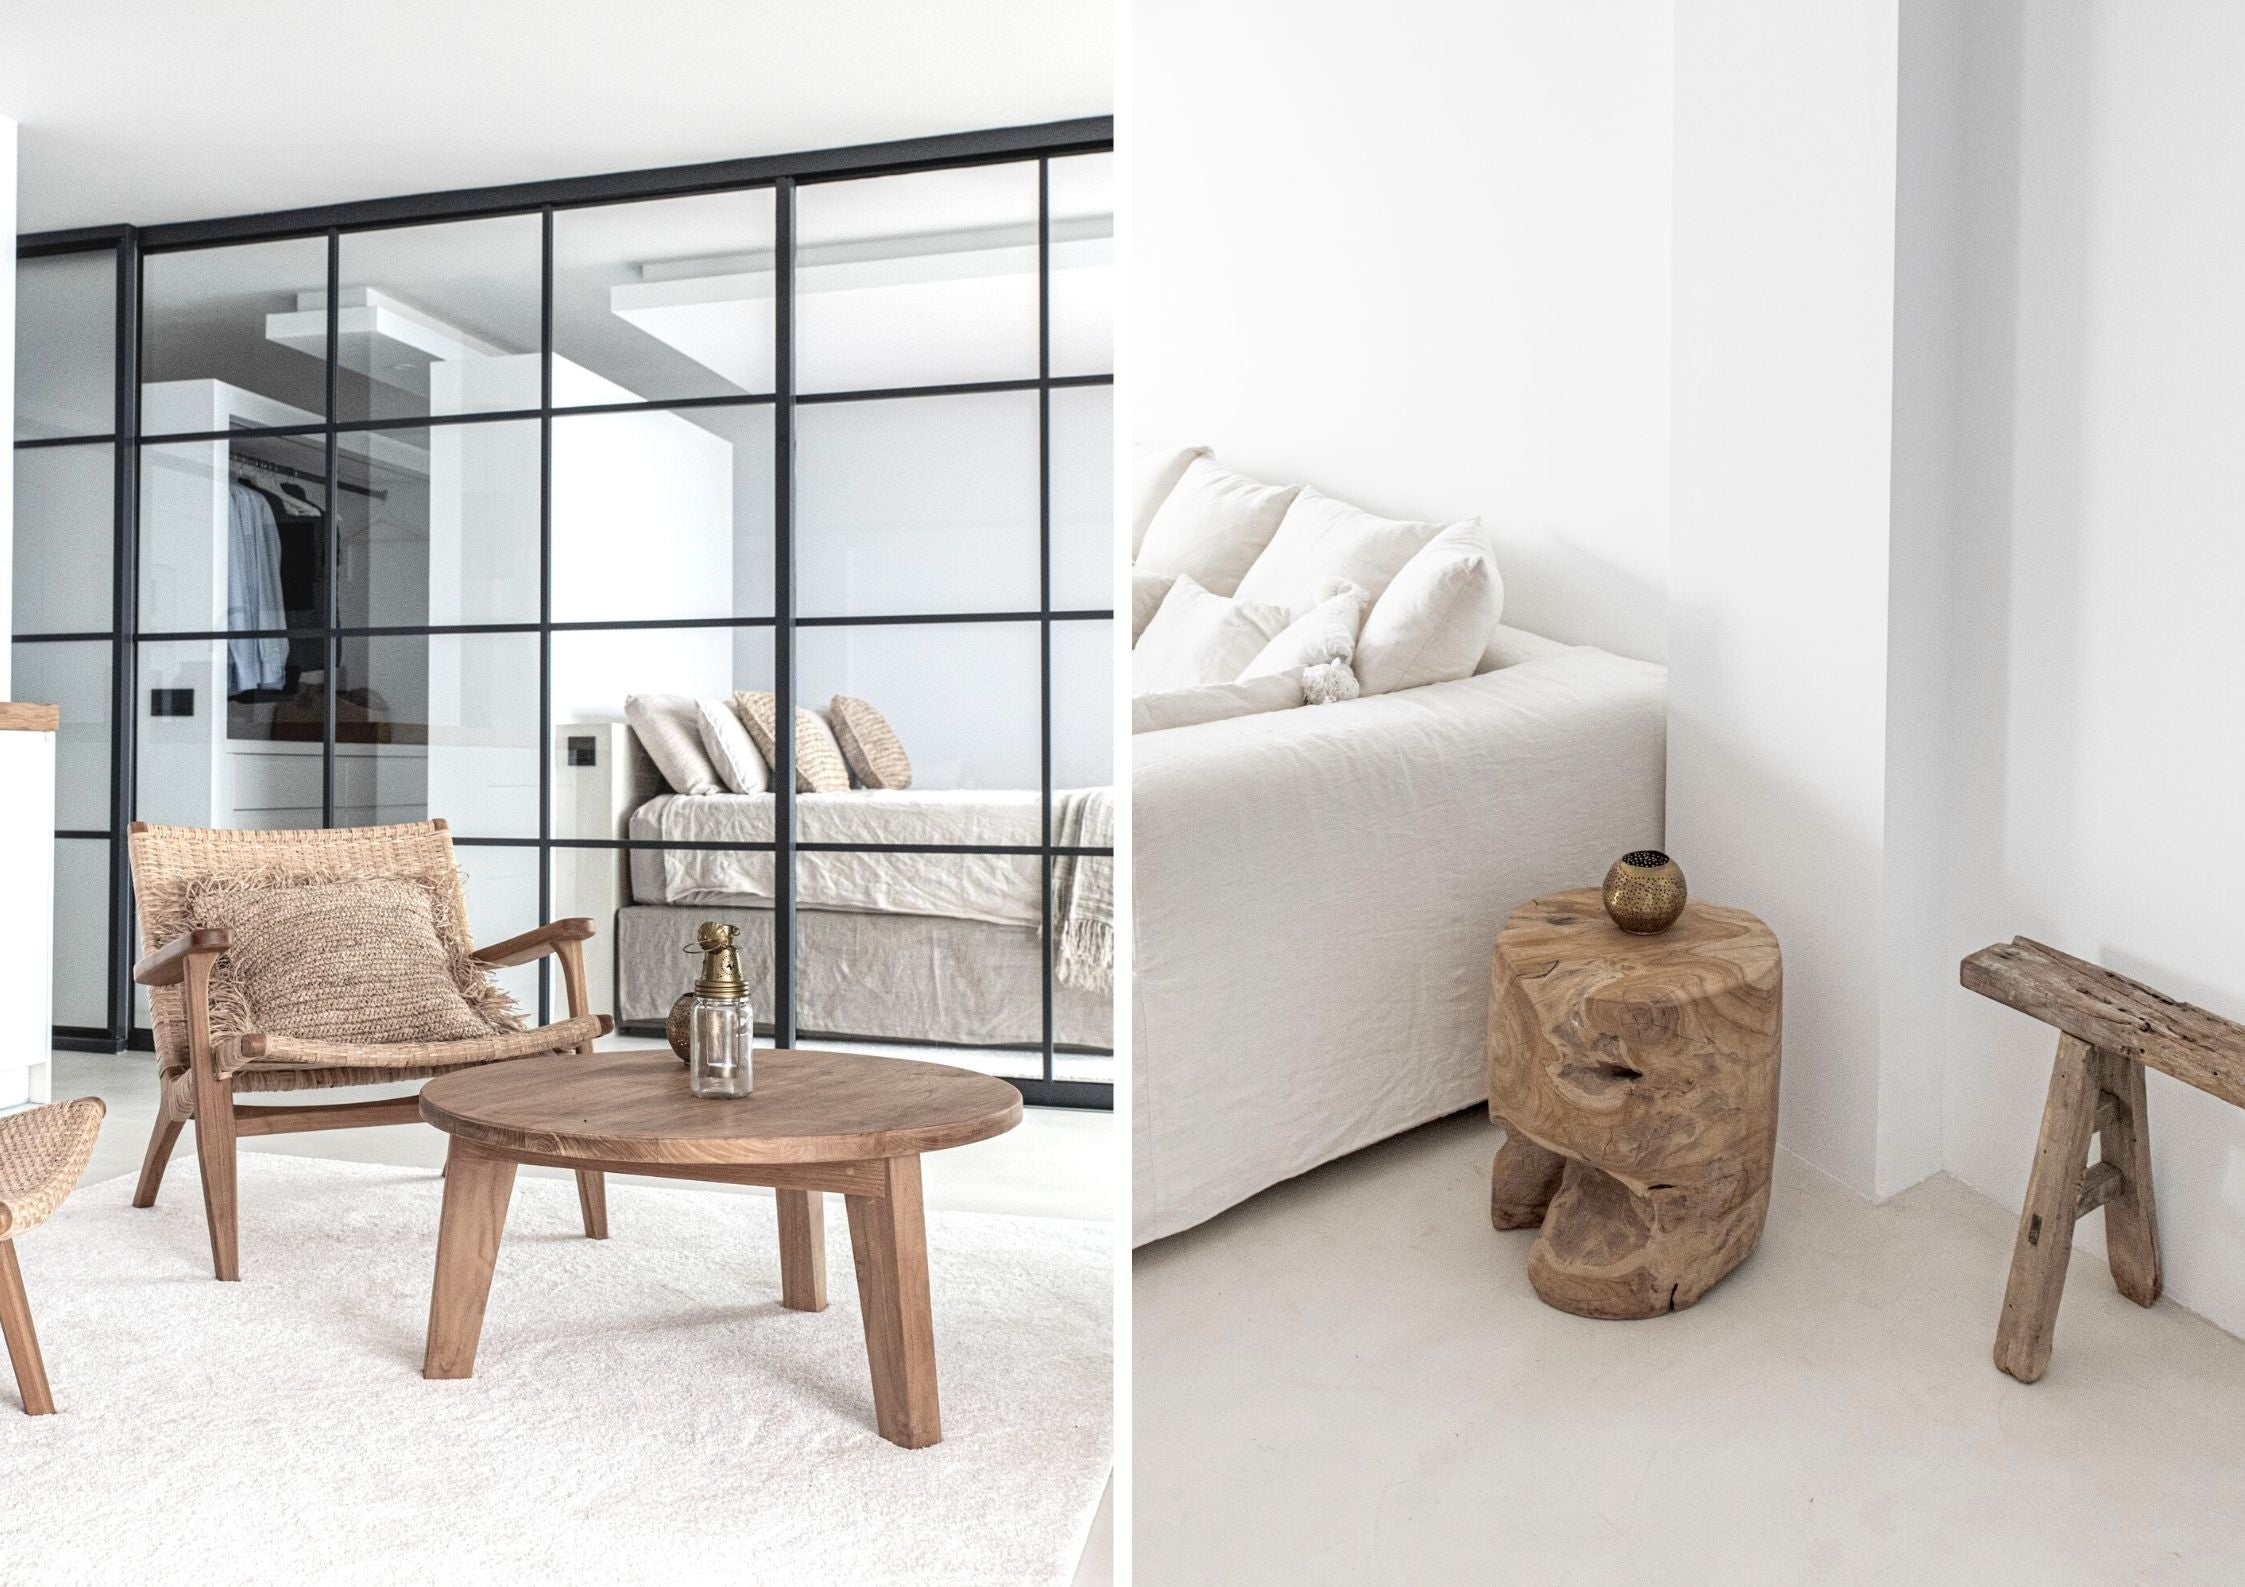 Zoco Home Bring natural textures into home living room